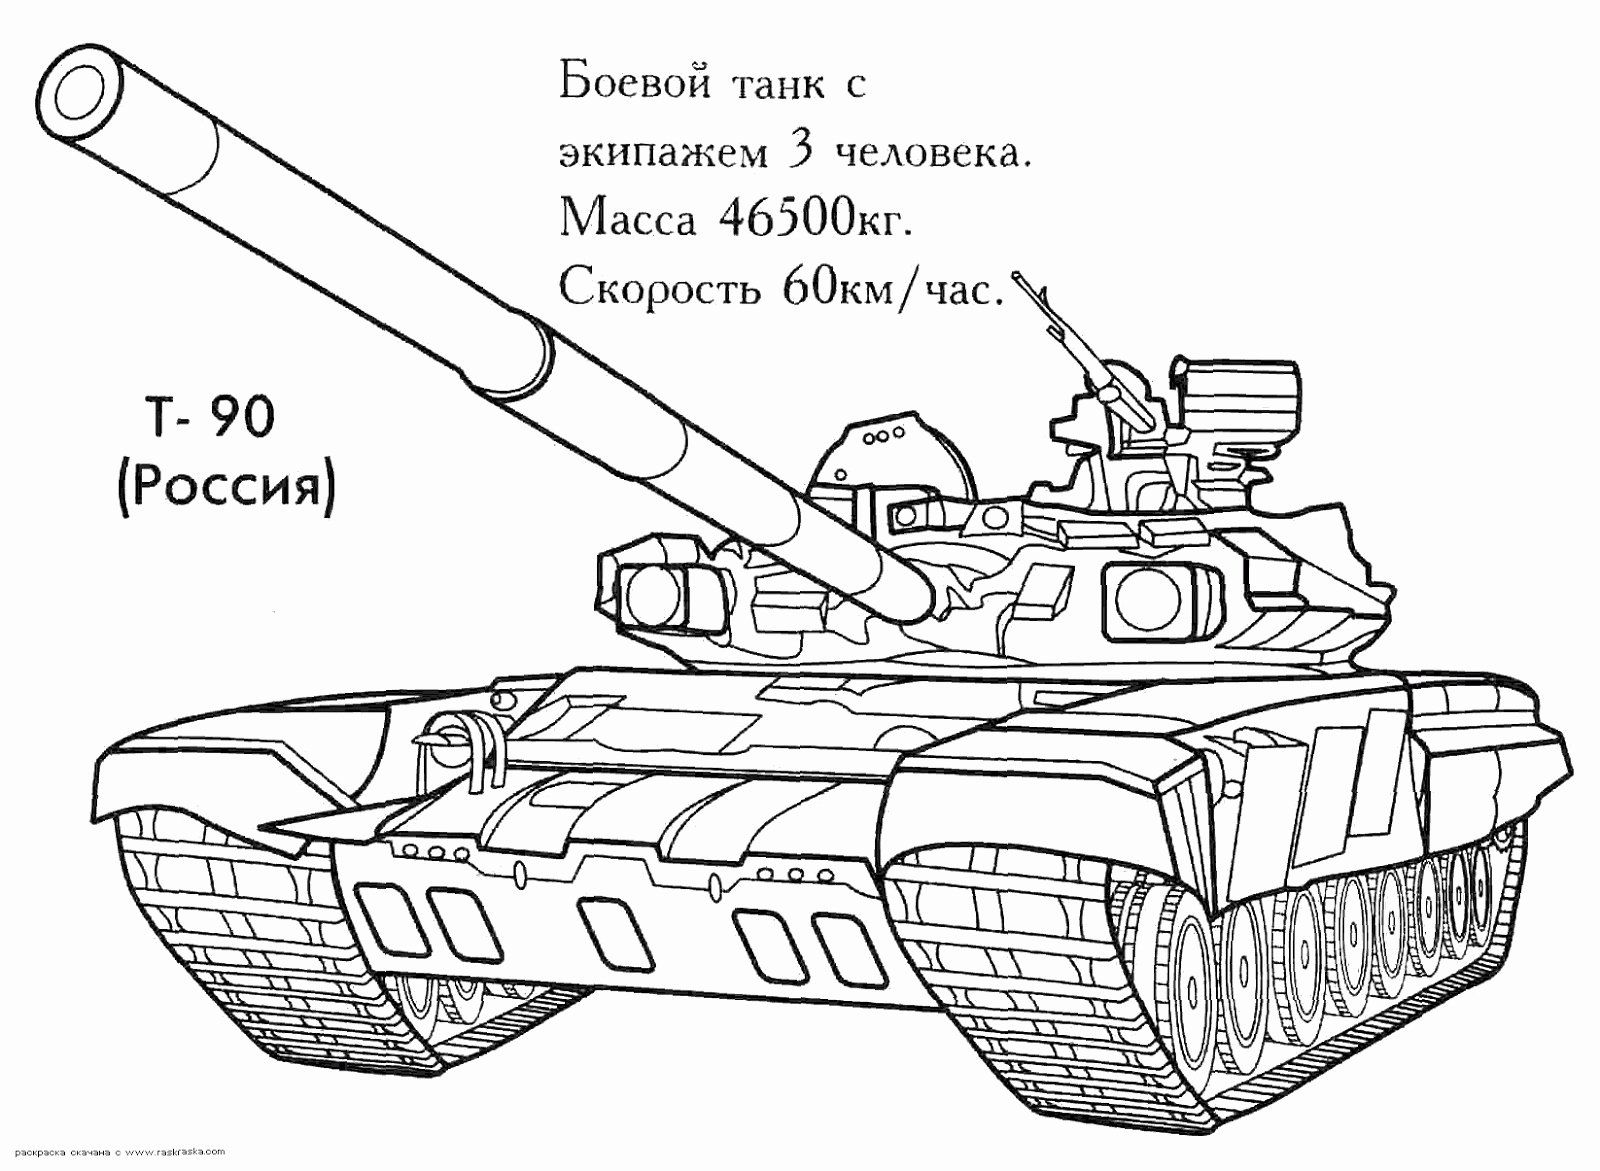 Military Truck Coloring Pages Luxury 27 Army Tank Coloring Pages Truck Coloring Pages Coloring Pages Tank Drawing